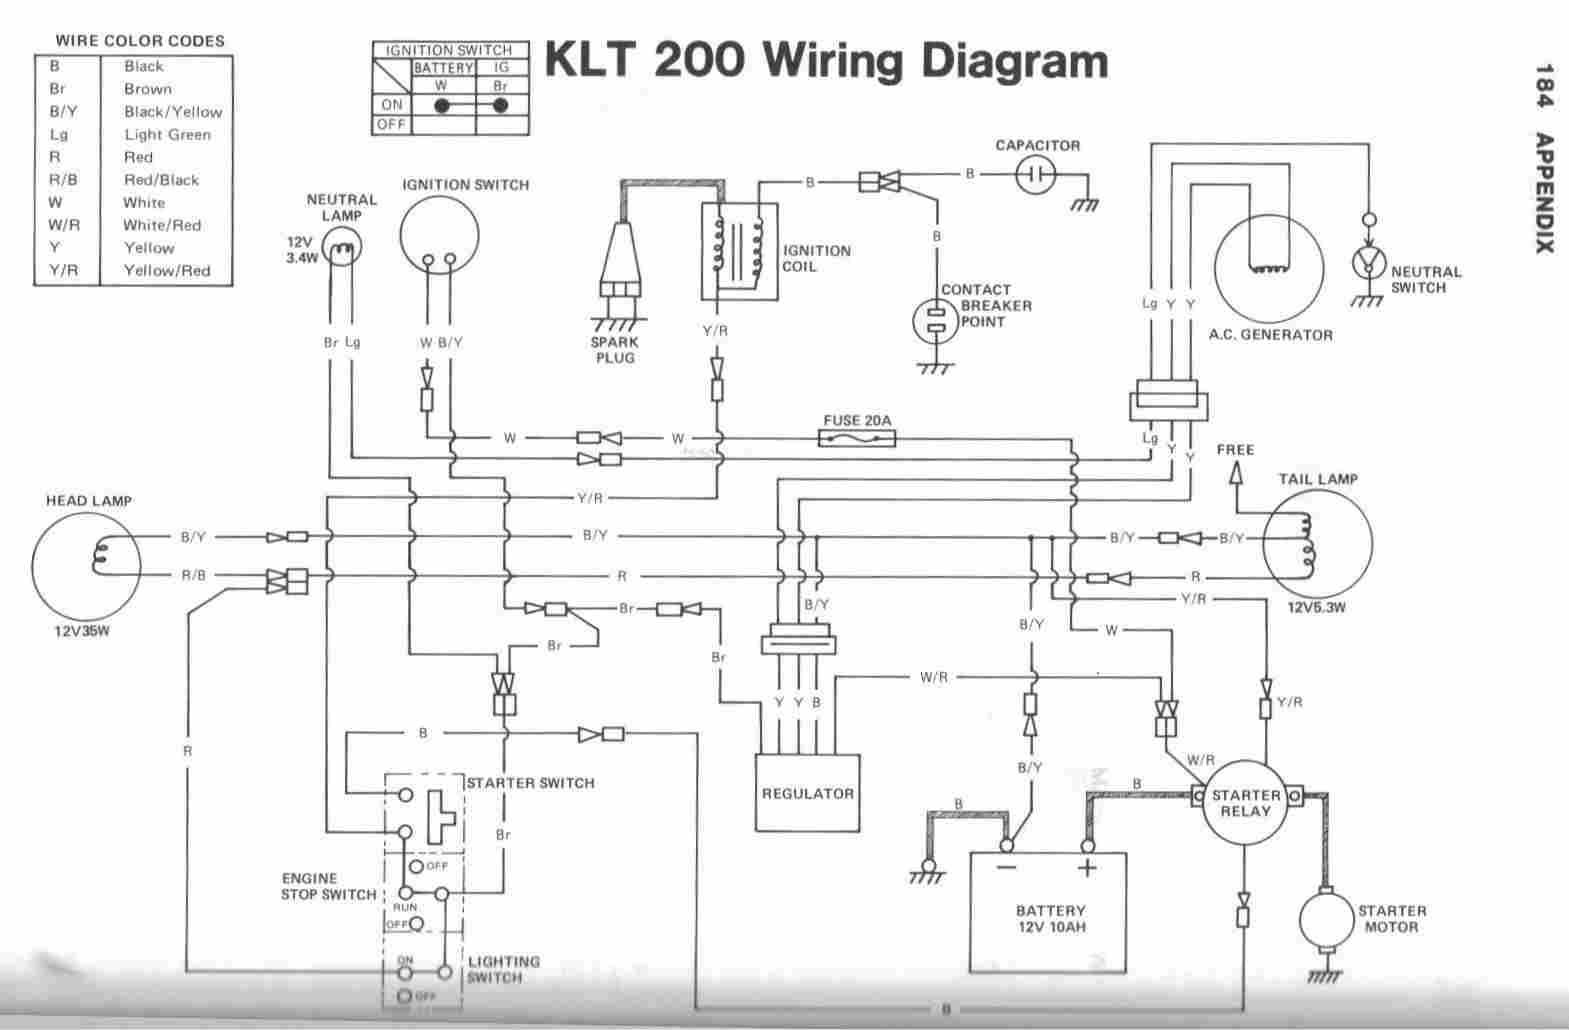 2869034594ce054a636782e5c44b61b4 residential electrical wiring diagrams pdf easy routing cool power wiring diagram deluxe space invaders at eliteediting.co